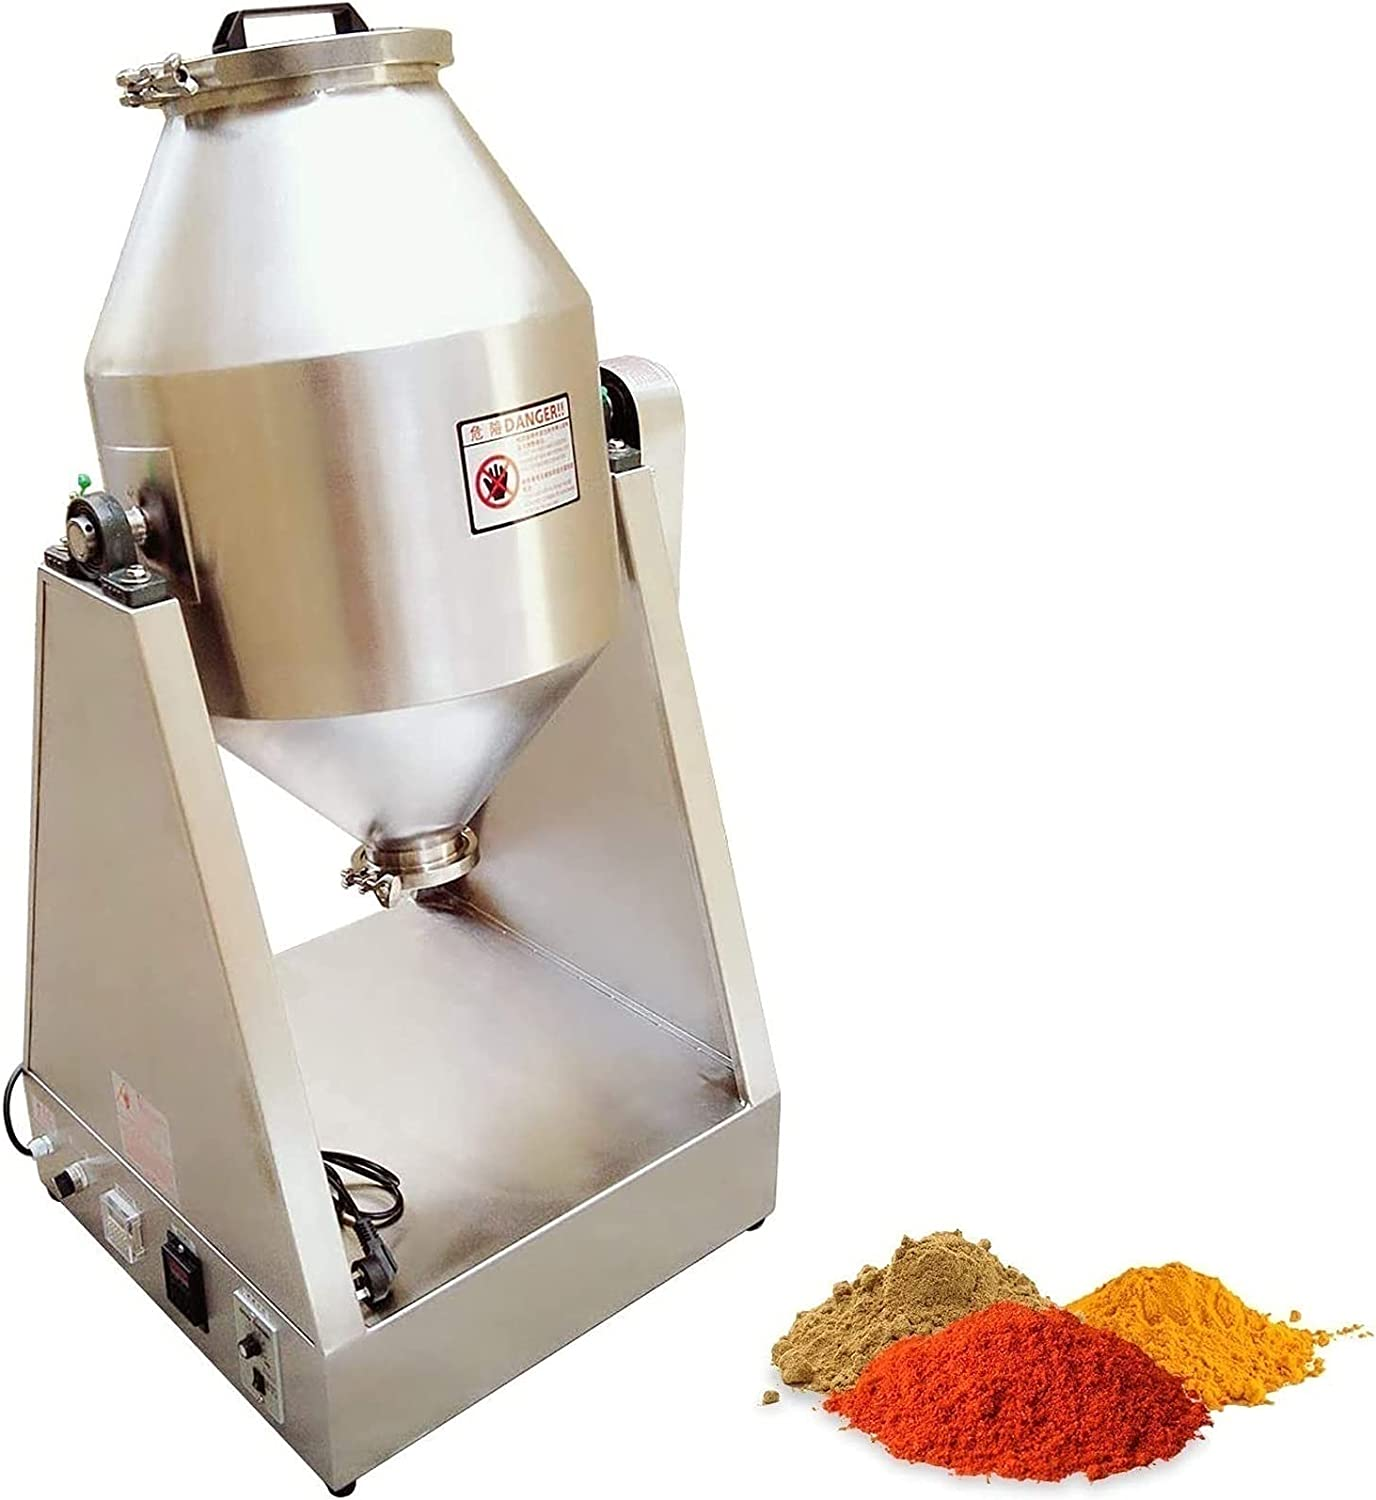 HSY Discount is also underway SHOP 20KG 20L Laboratory Powder Blender P Dry Particle NEW before selling Mixer